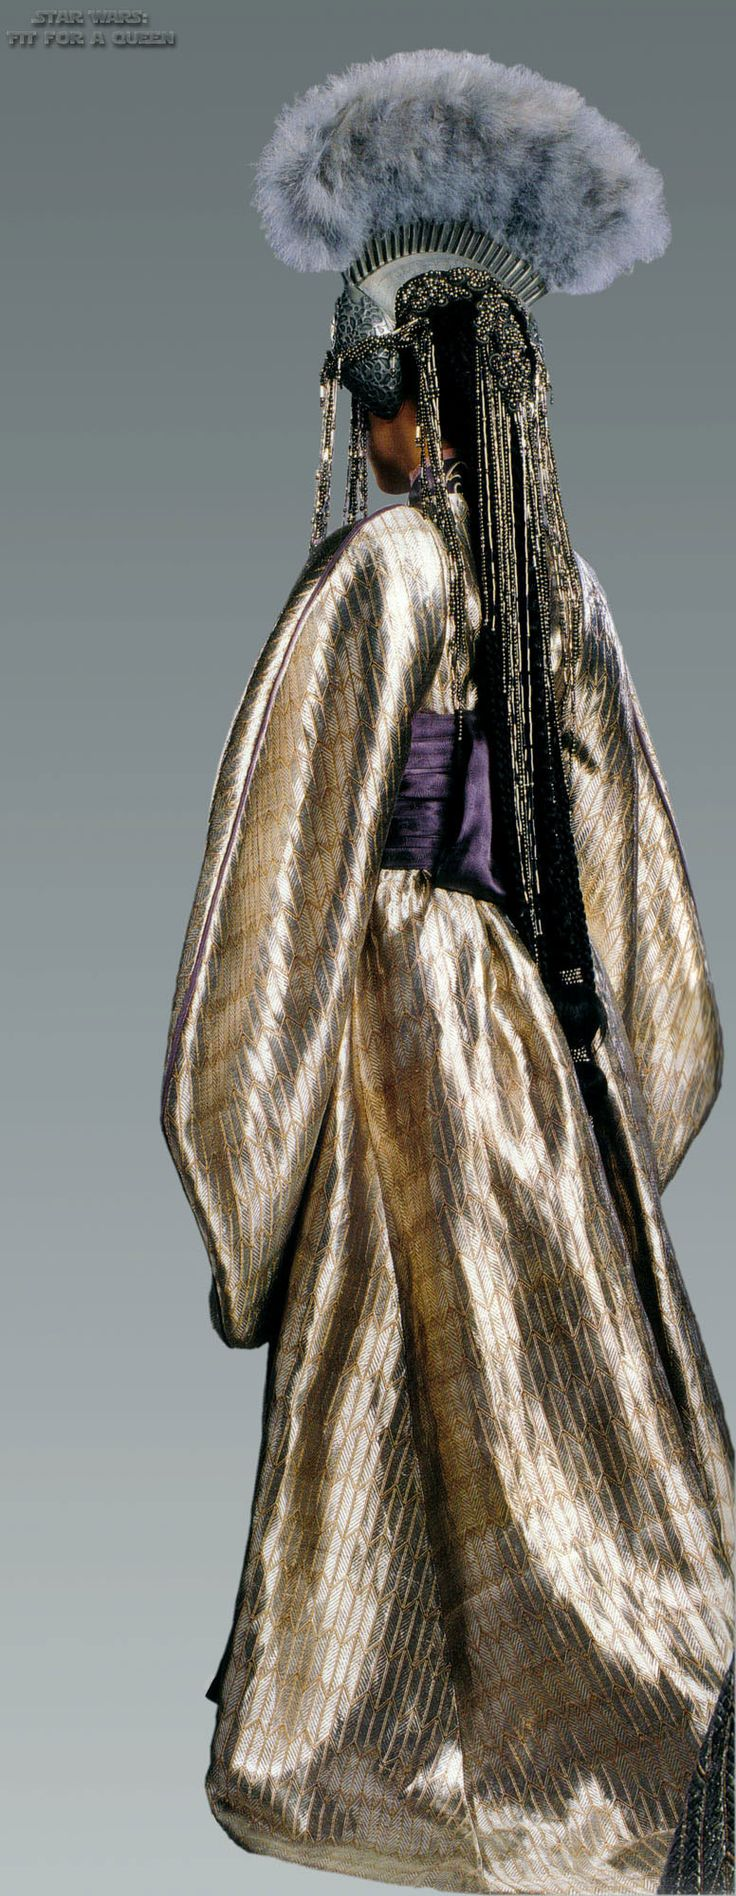 Star Wars Episode III. Queen Apailana, Morning gown. Back View. Worn during Padme Amidala's funeral.